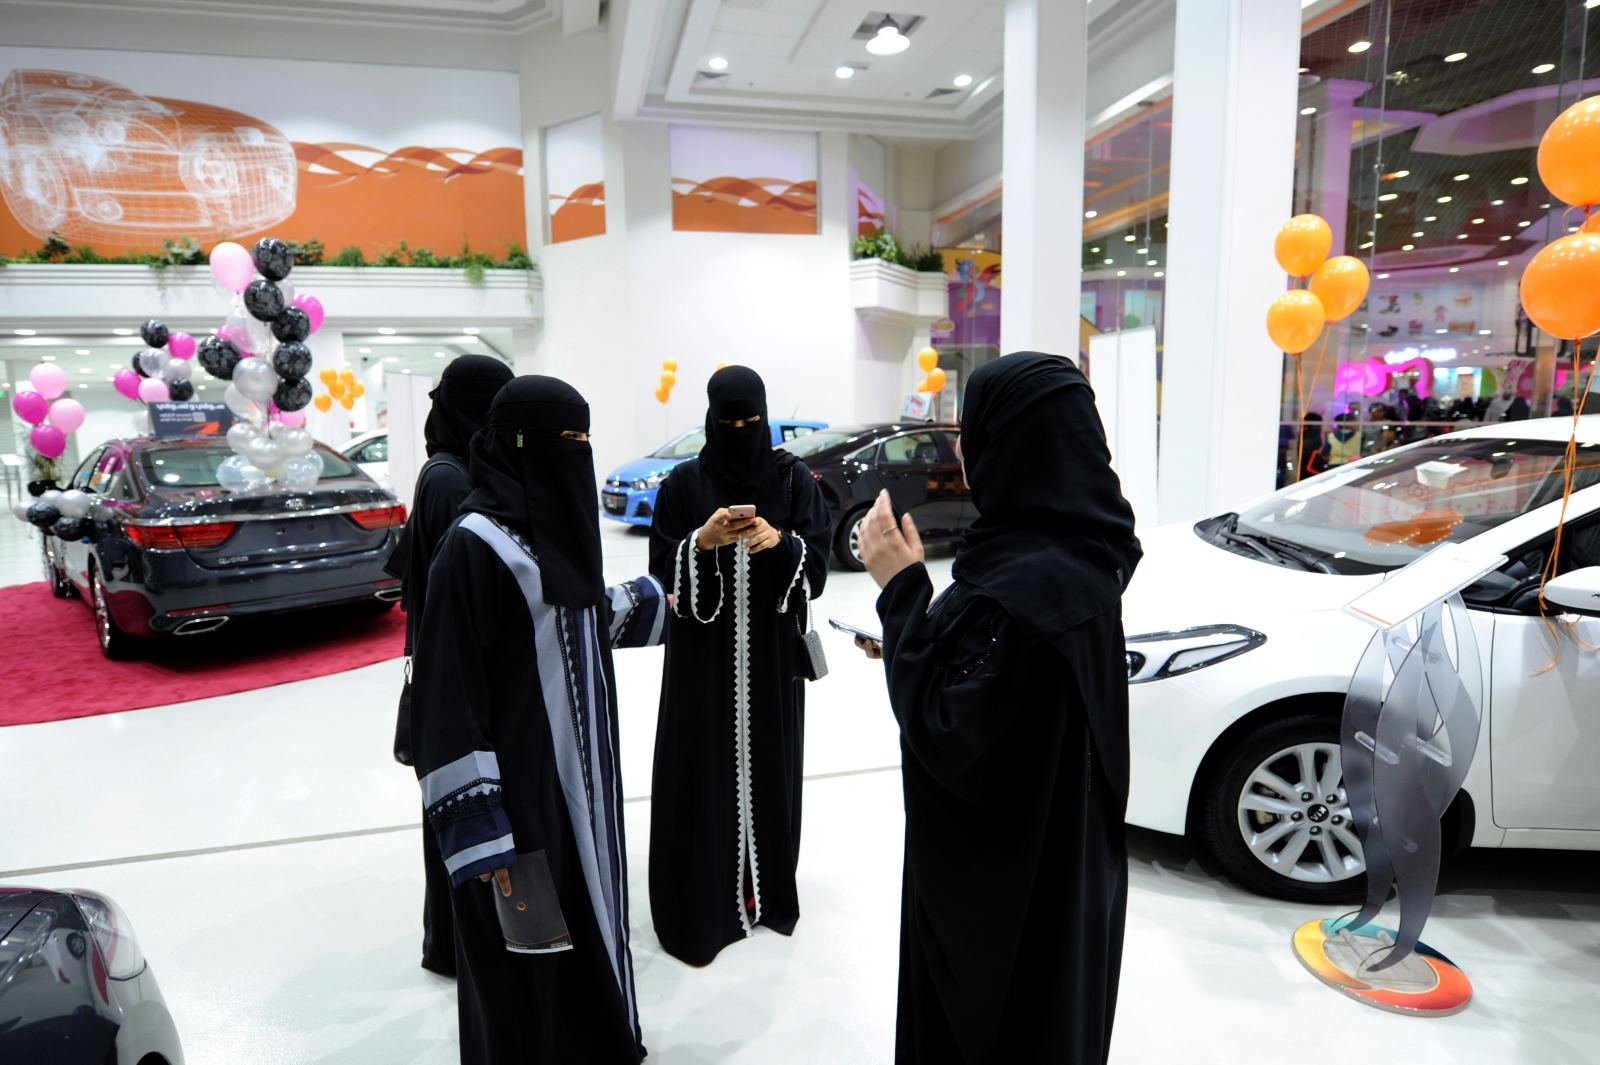 Saudi women tour a car showroom for women in the Red Sea port city of Jeddah